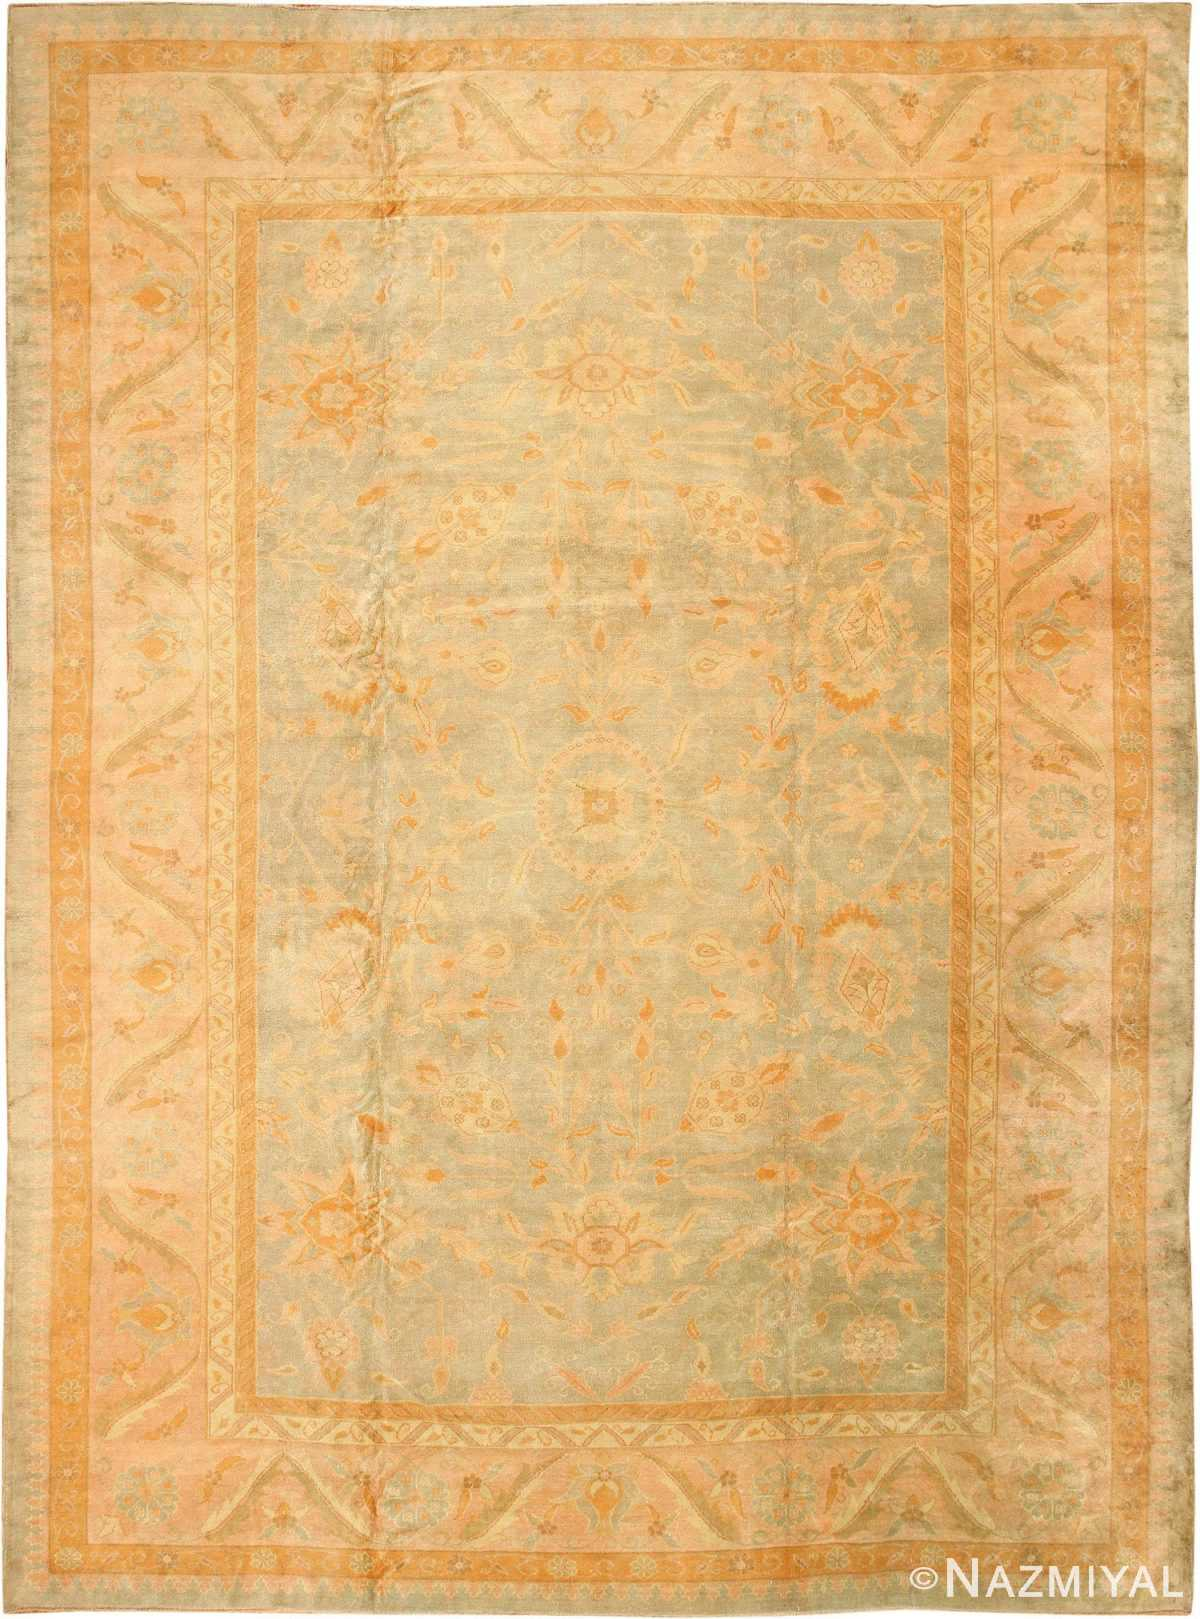 Decorative Antique Turkish Oushak Rug 48941 Nazmiyal